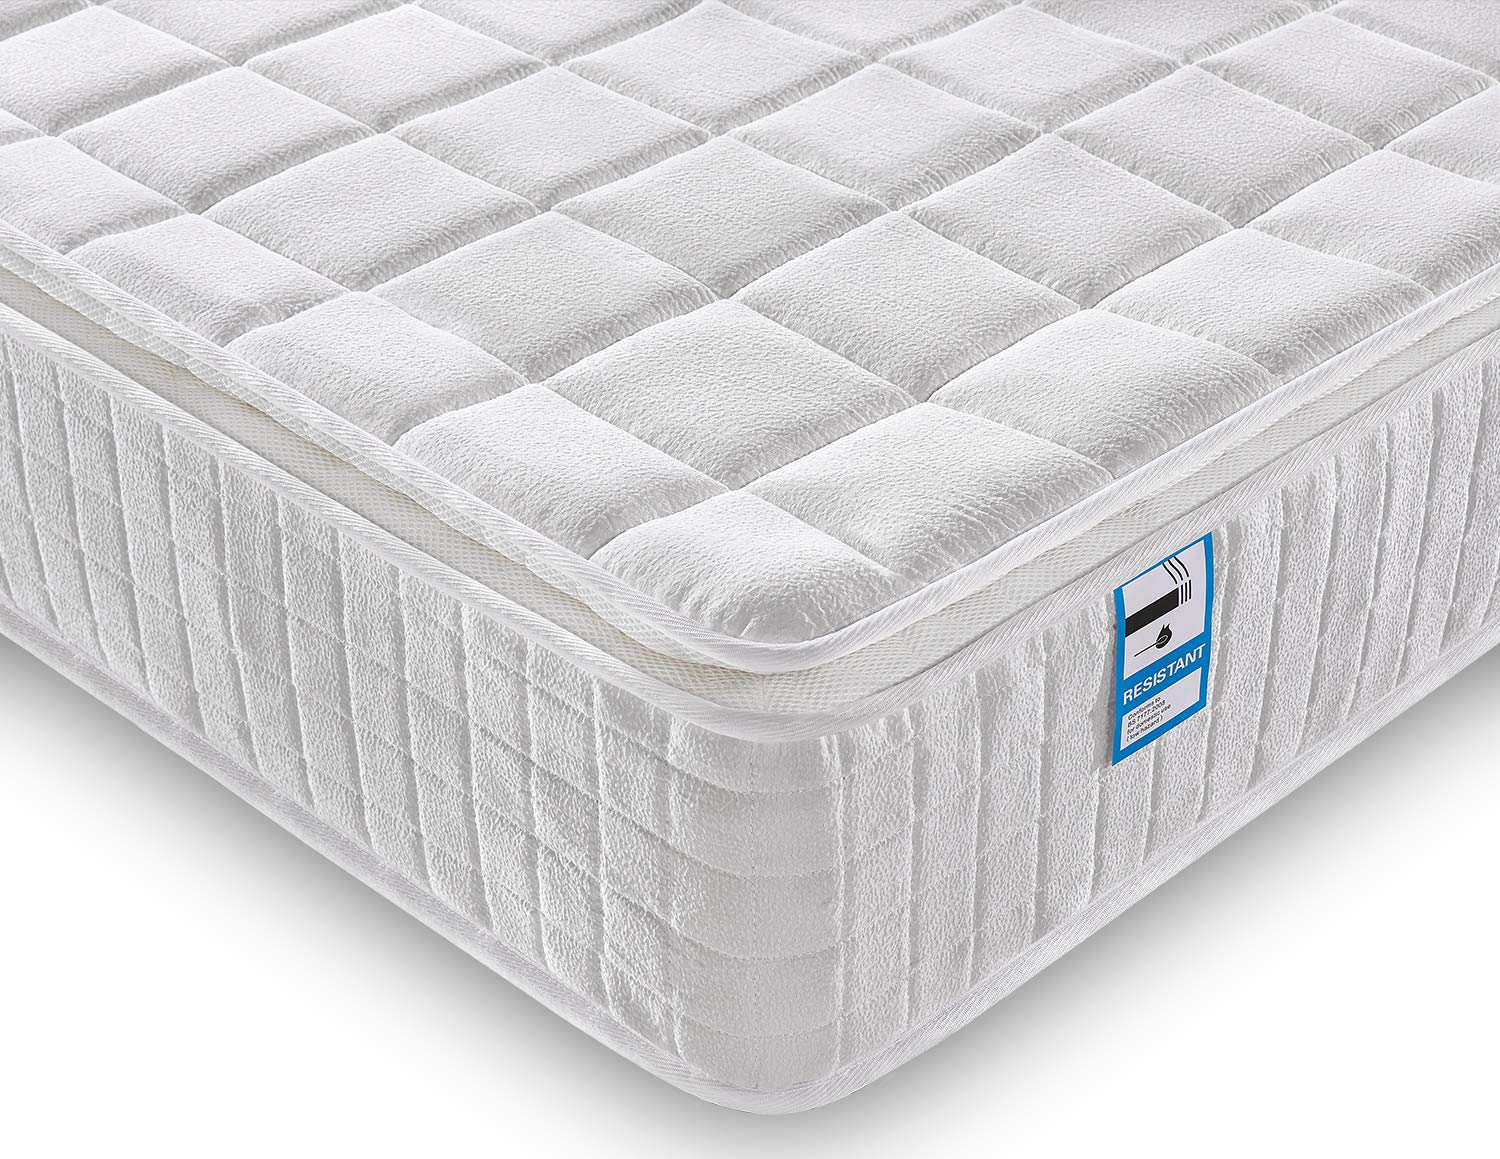 Ej. Life Small Single Mattress, Nine Zone Pocket Sprung Mattress 2FT6 Double Memory Foam Mattress with Breathable Broche Fabrics